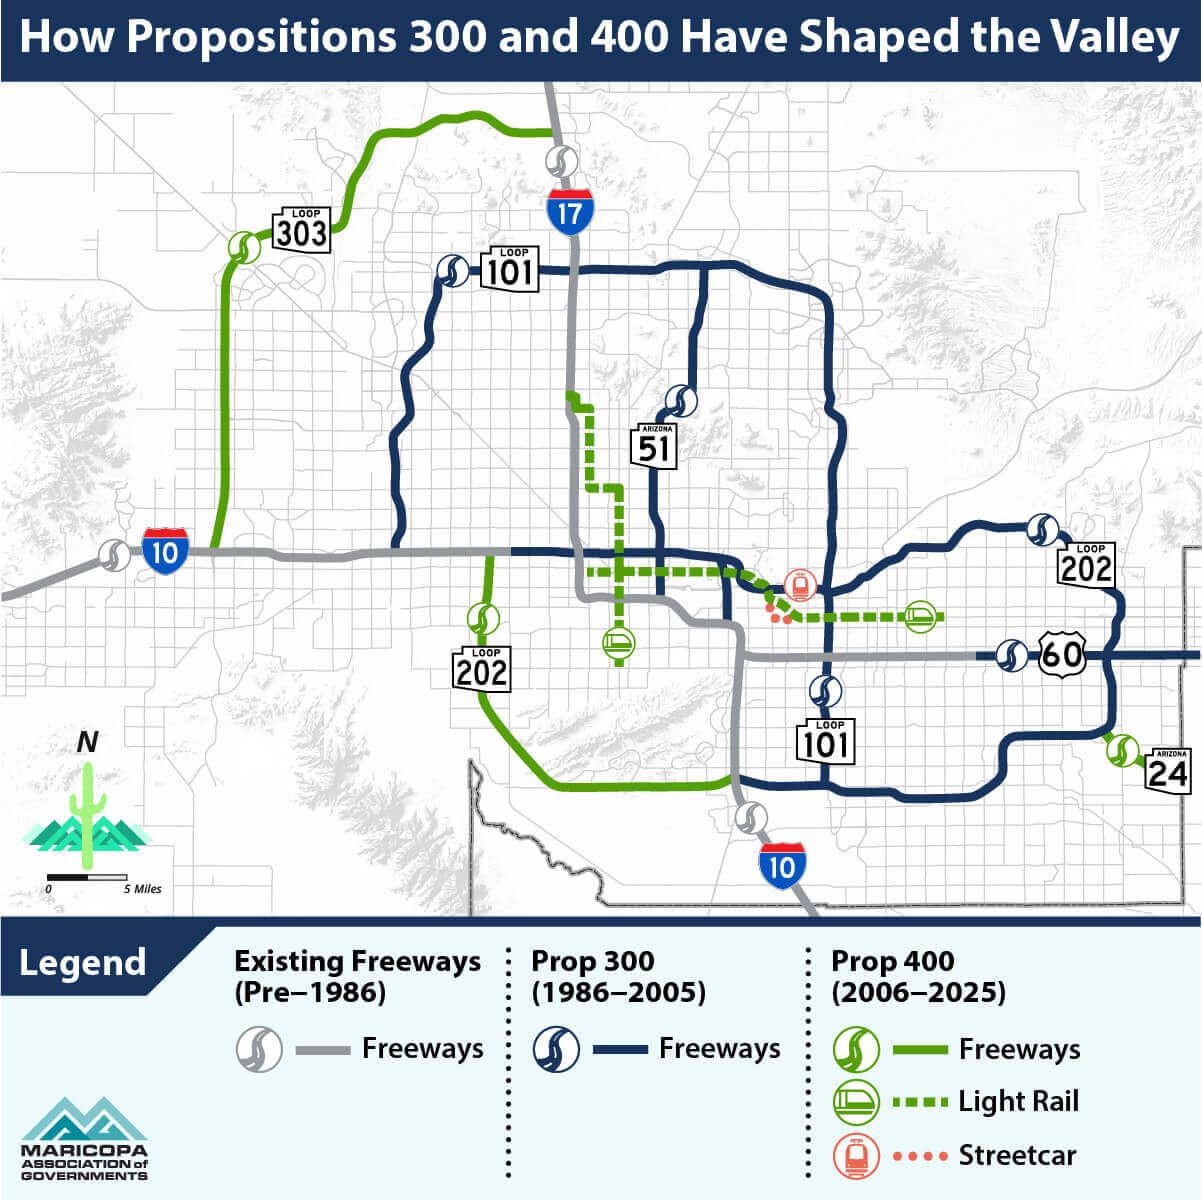 Map showing how propositions 300 and 400 have shaped the Valley